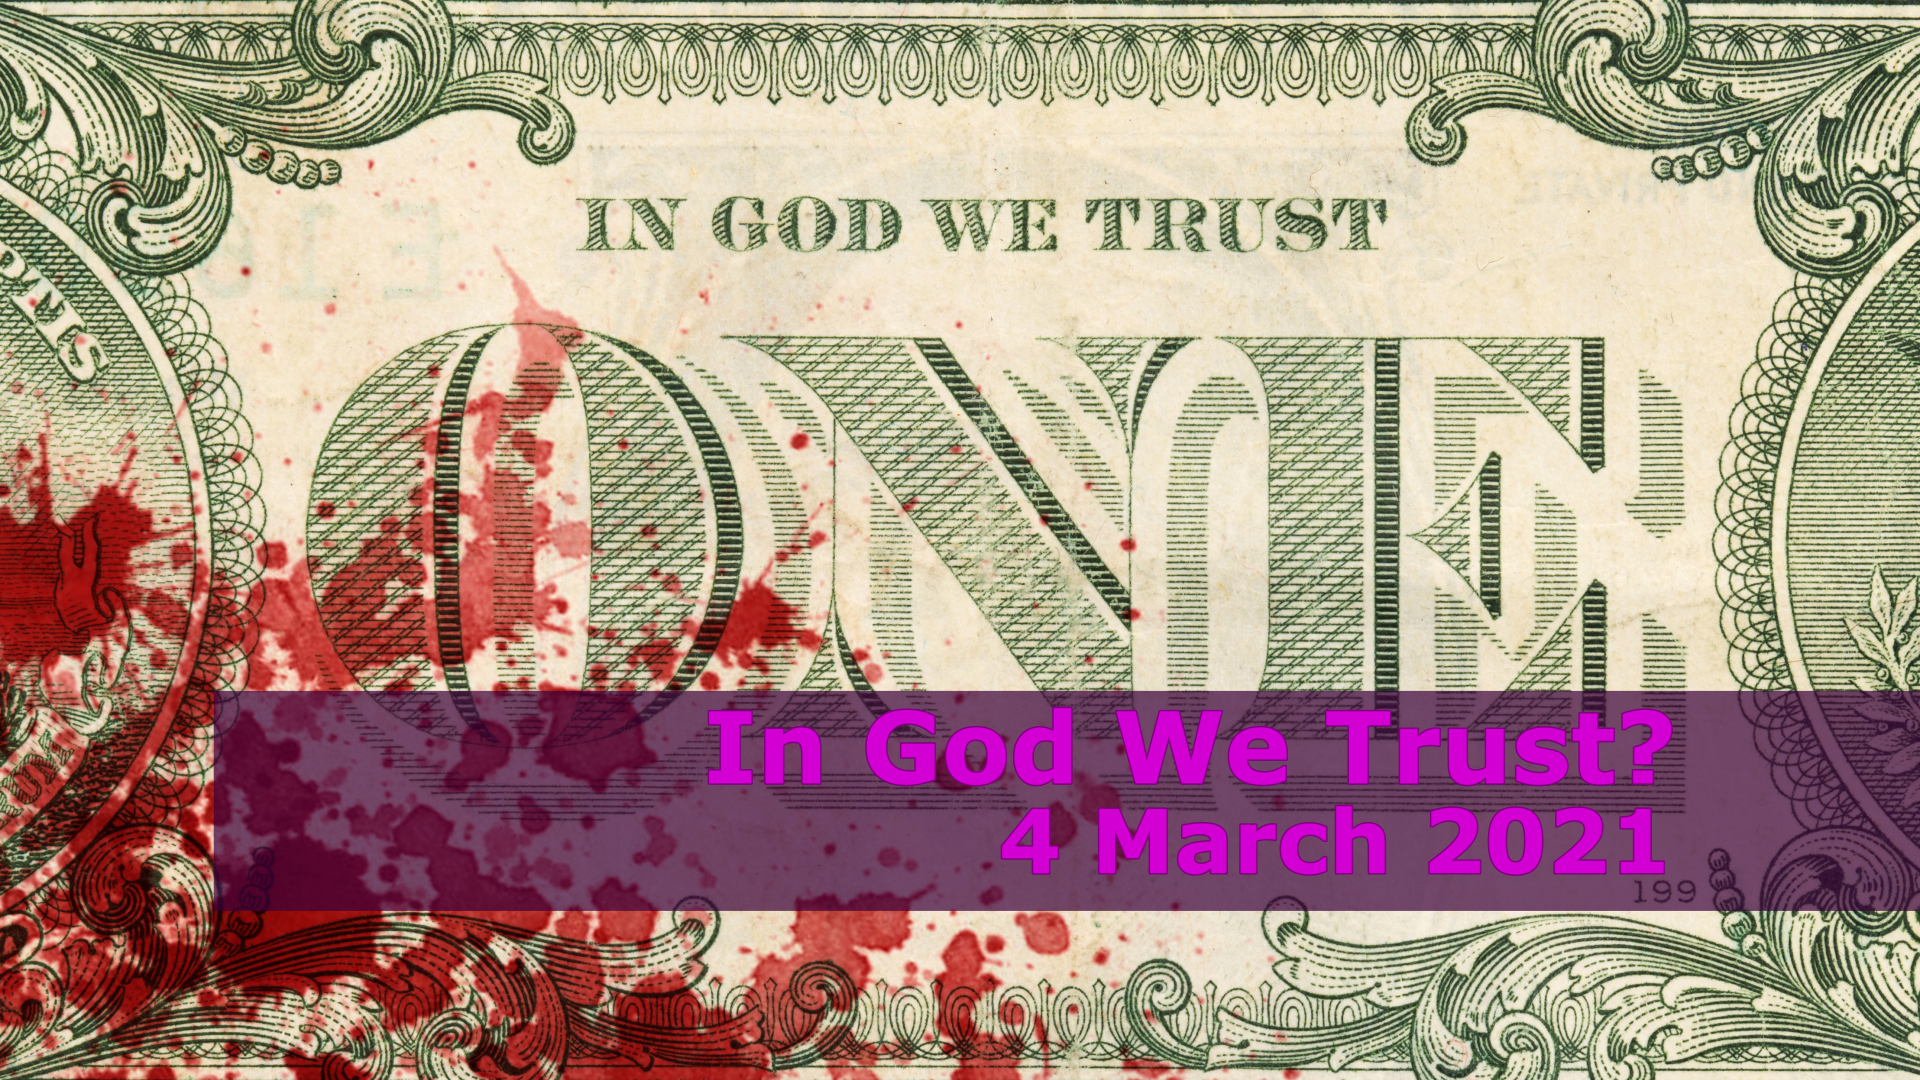 <span class='p-name'>In God We Trust? — 4 March 2021 Devotional</span>